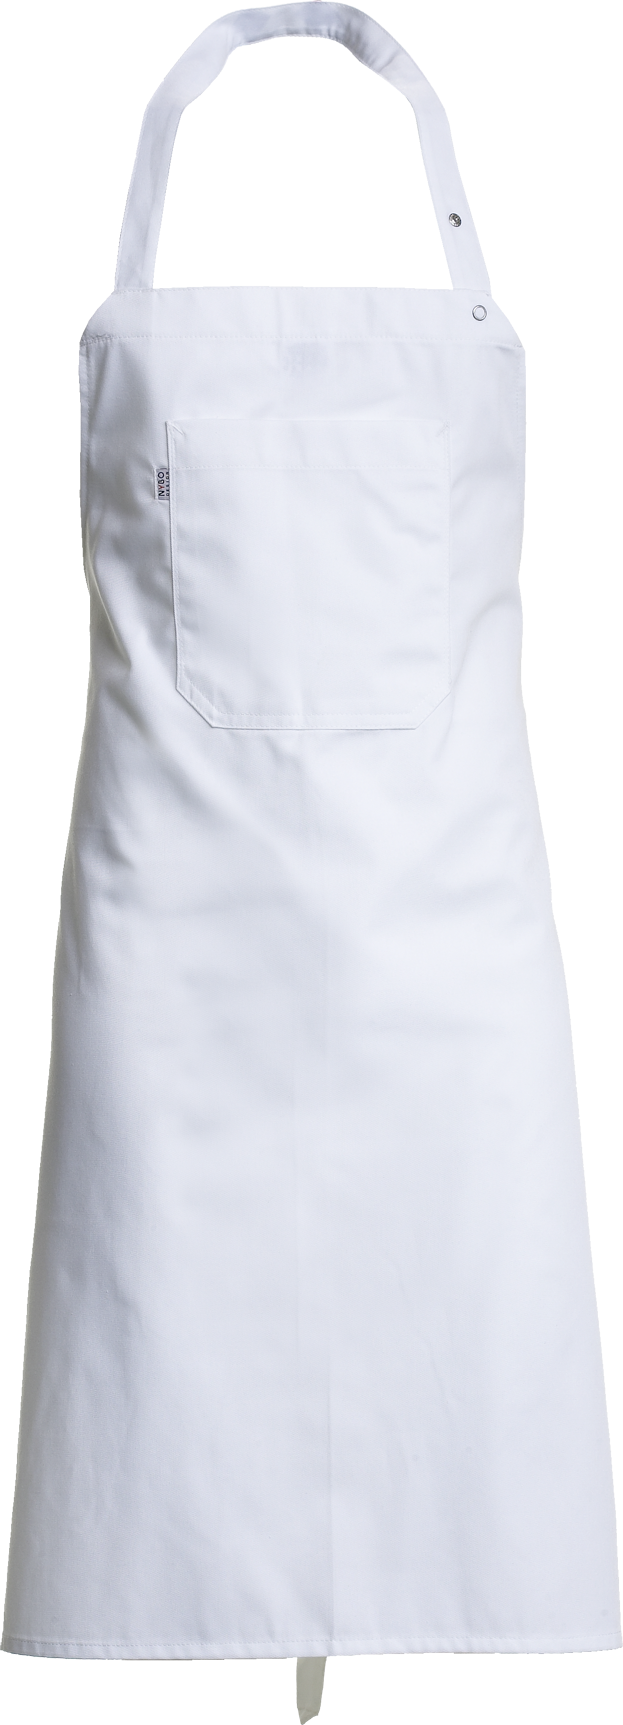 Apron with  front pocket (610001900)